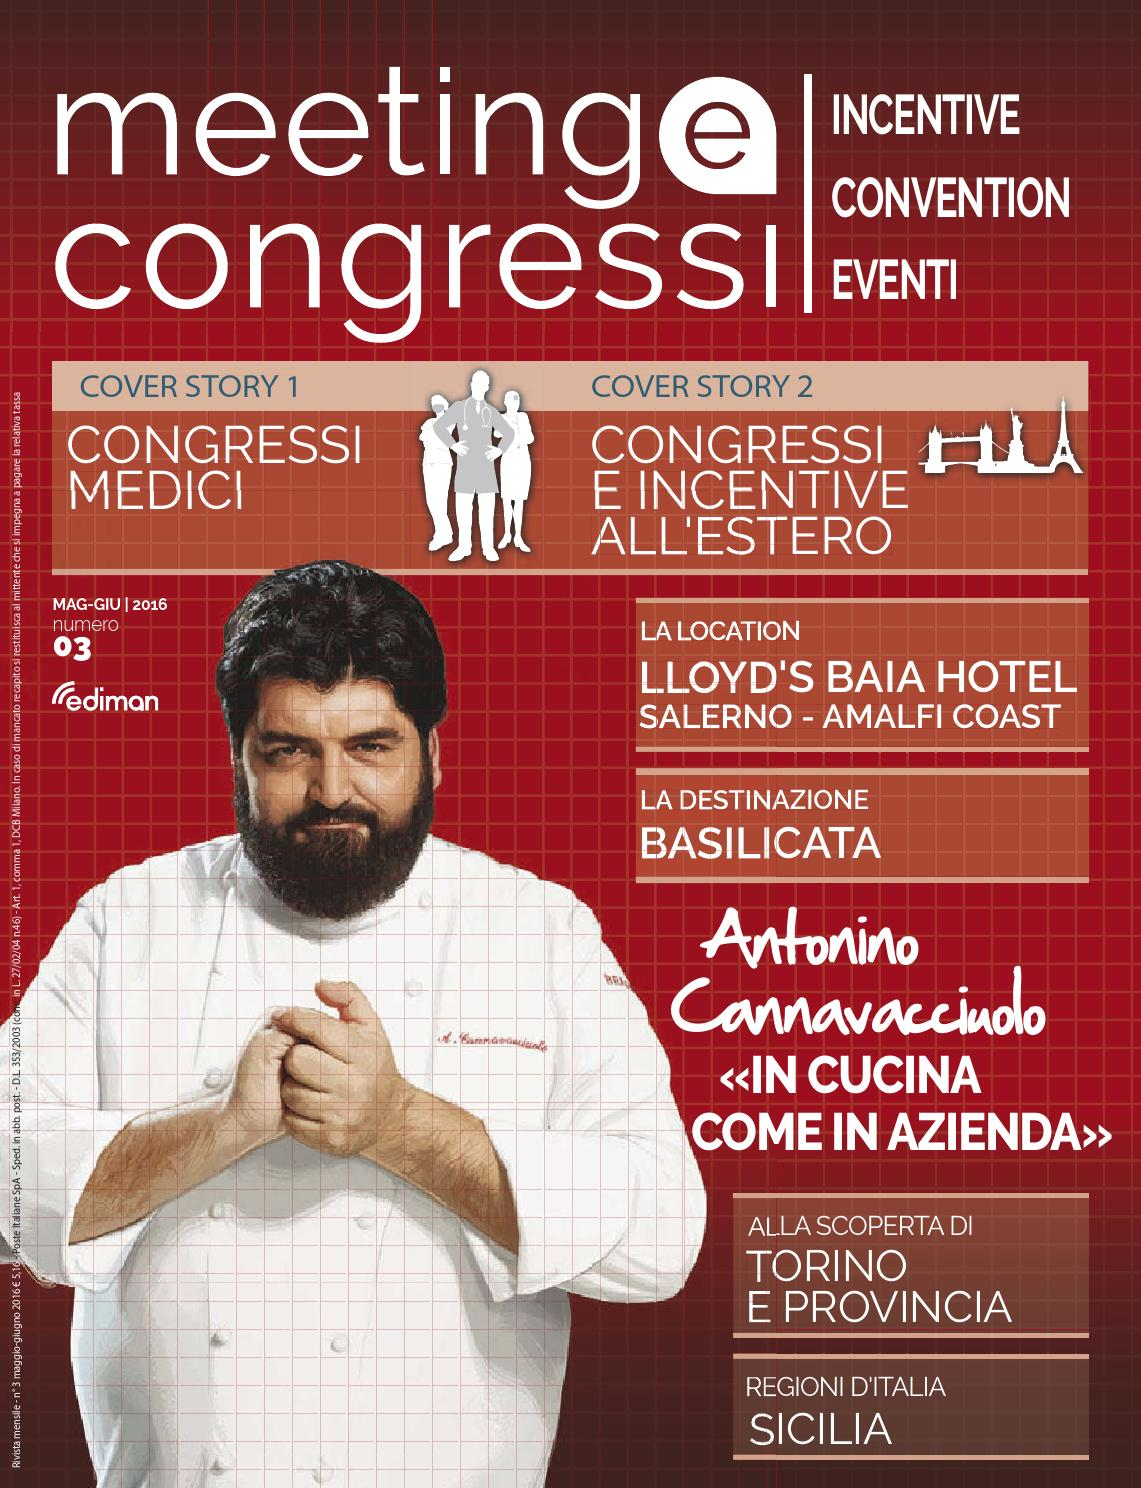 Meeting e Congressi - Mag Giu 2016 by Ediman - issuu 4672b98f938